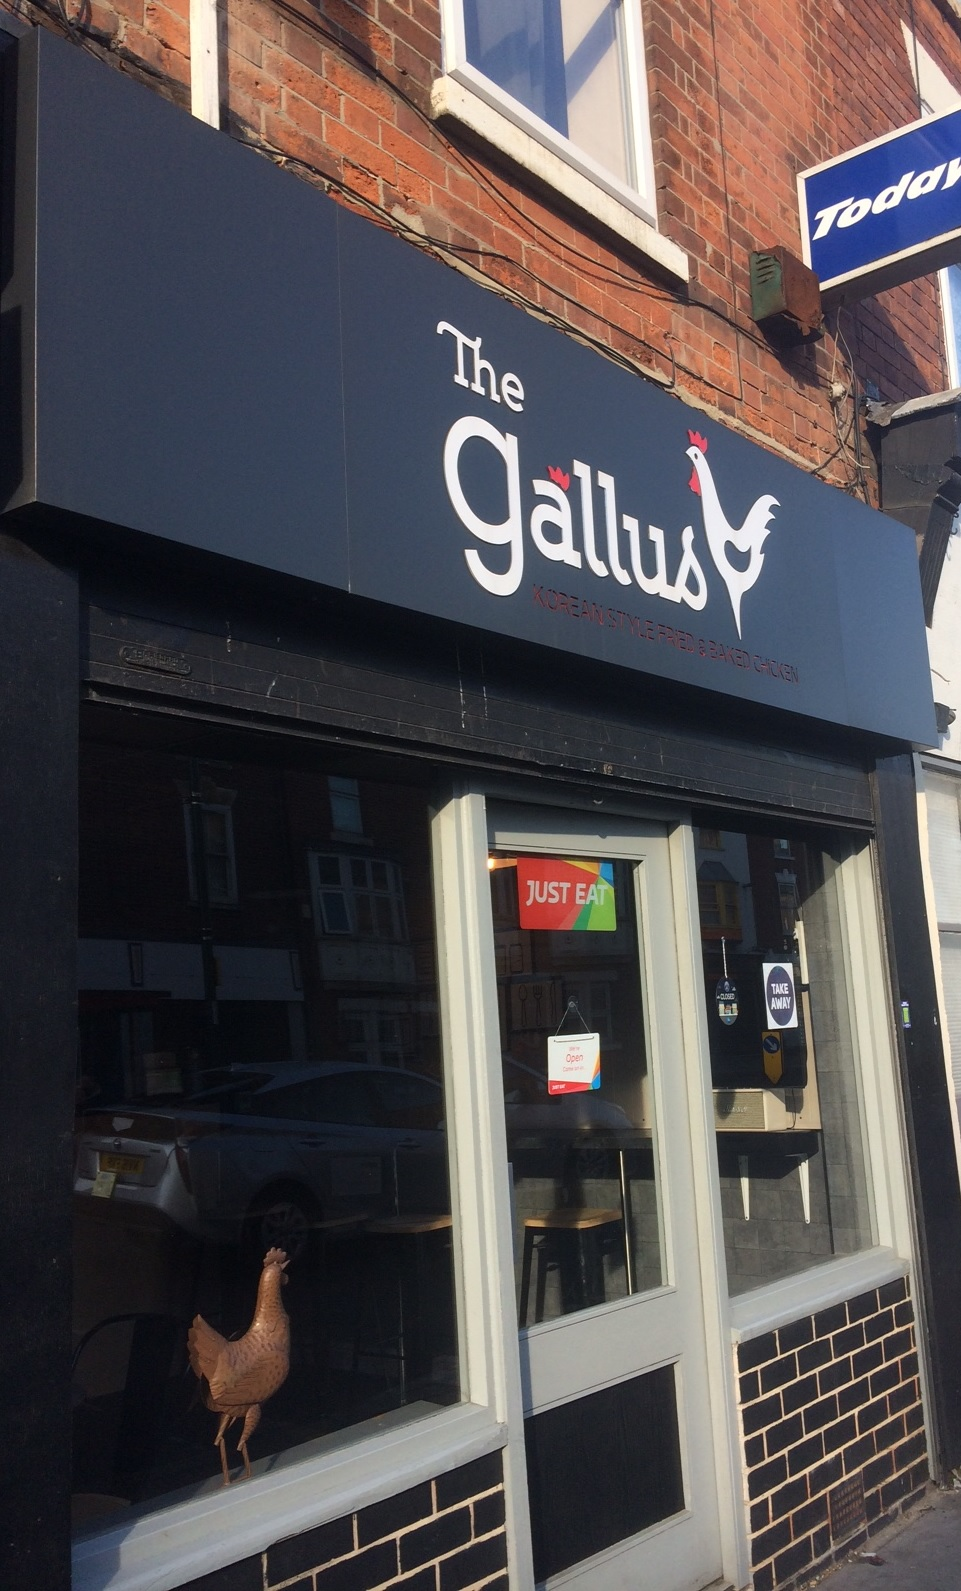 Korean Style Fried Chicken At The Gallus The Nottingham